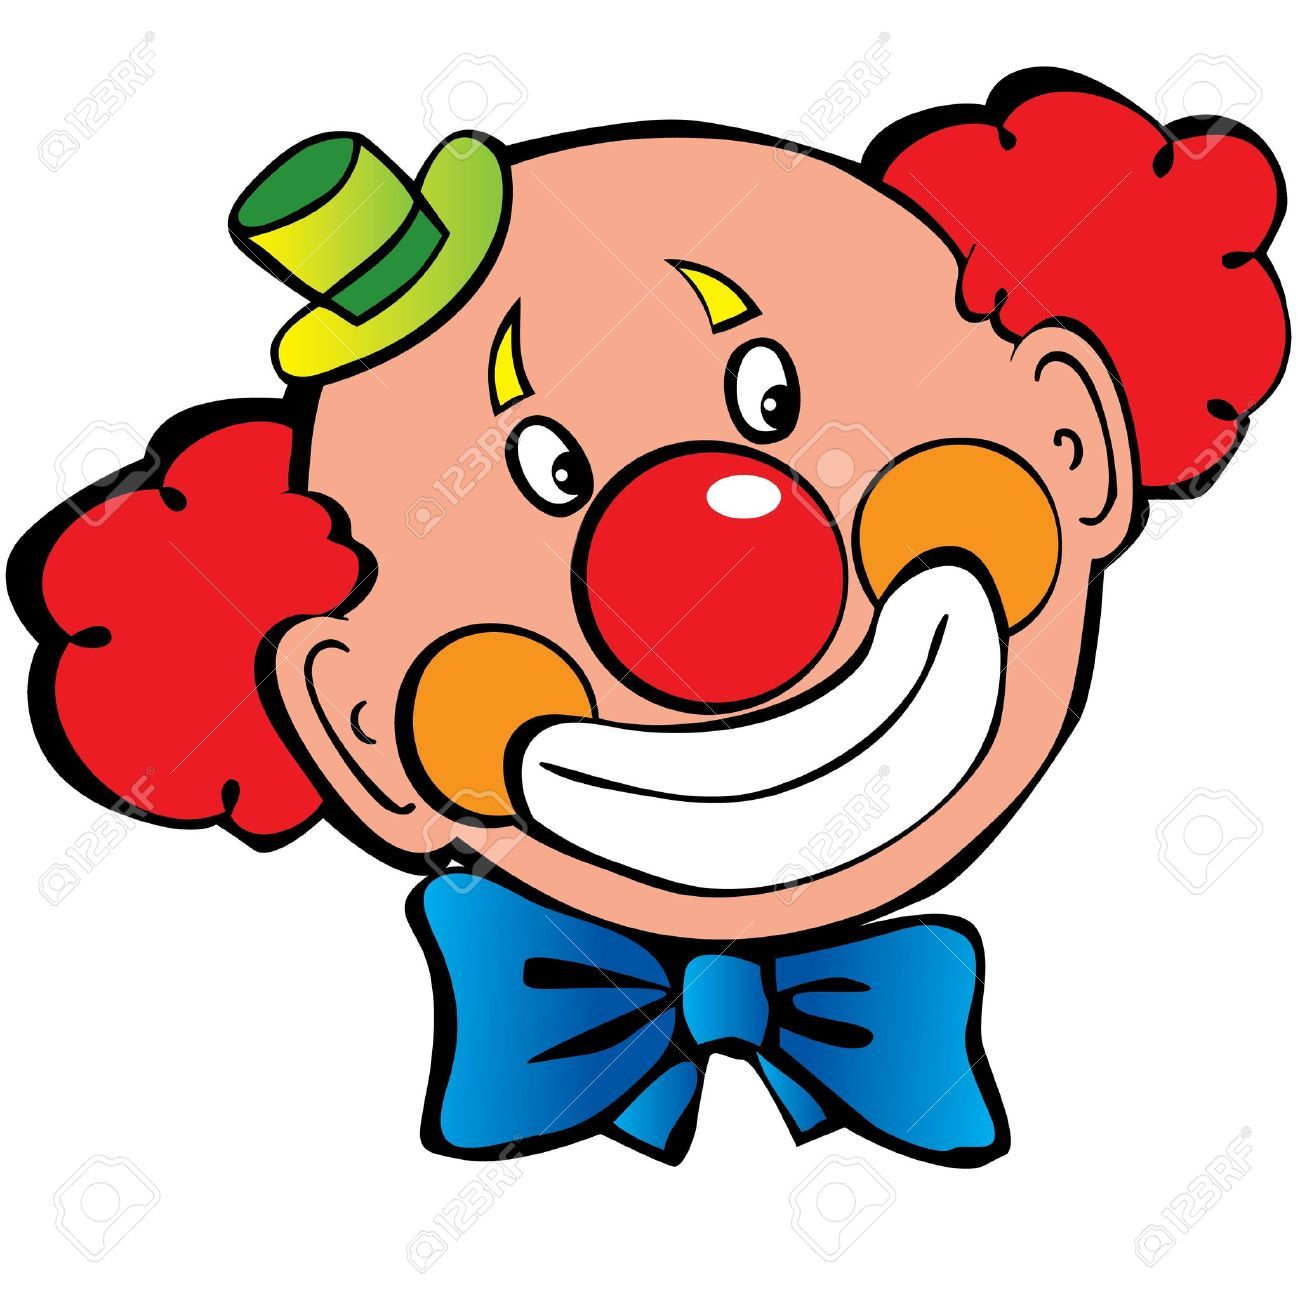 Clown clipart. Image of face free